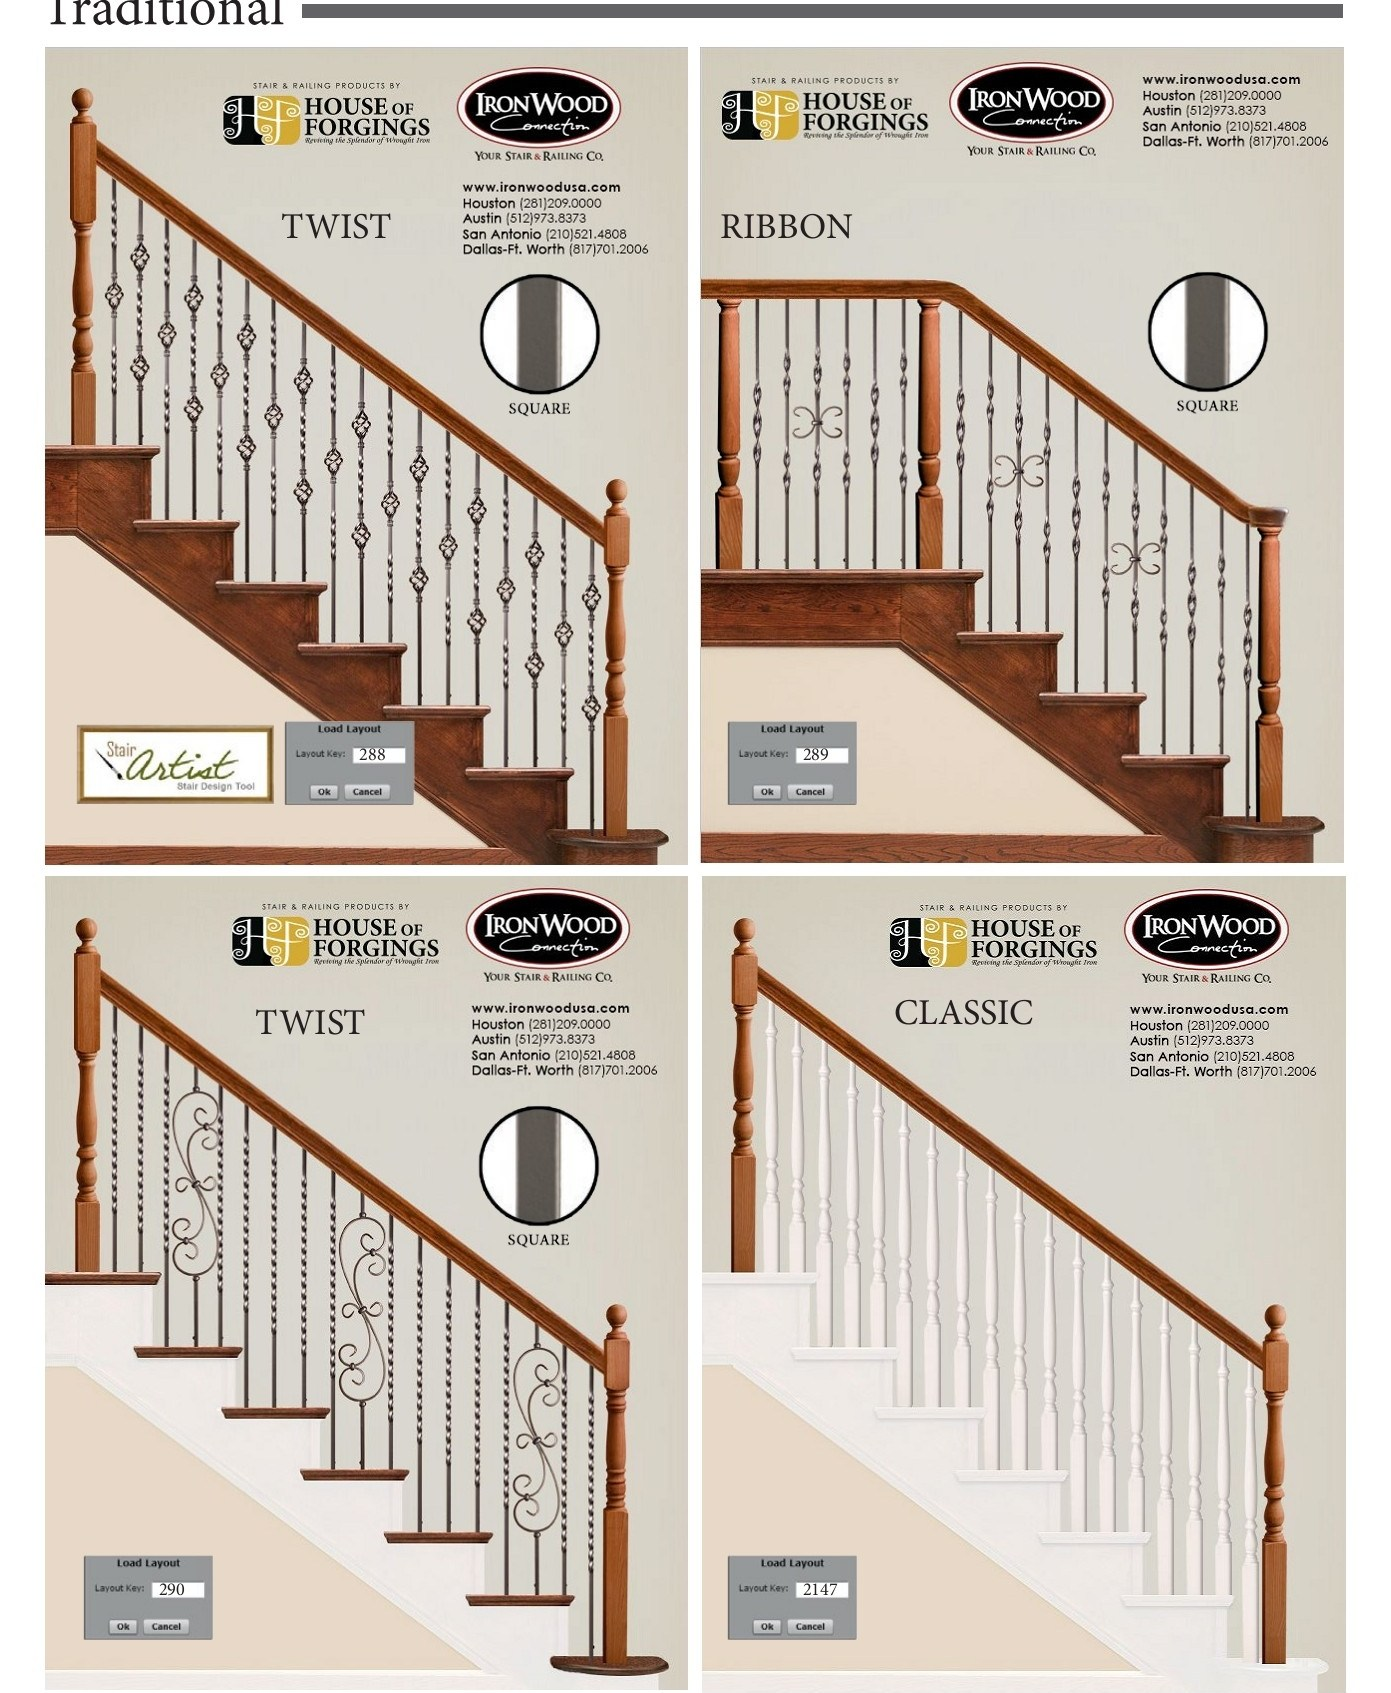 Popular Iron Baluster Patterns By Style Pages 1 15 Text | House Of Forgings Aalto | Stair Parts | Aalto Modern | Aalto Collection | Wrought Iron Baluster | Handrail